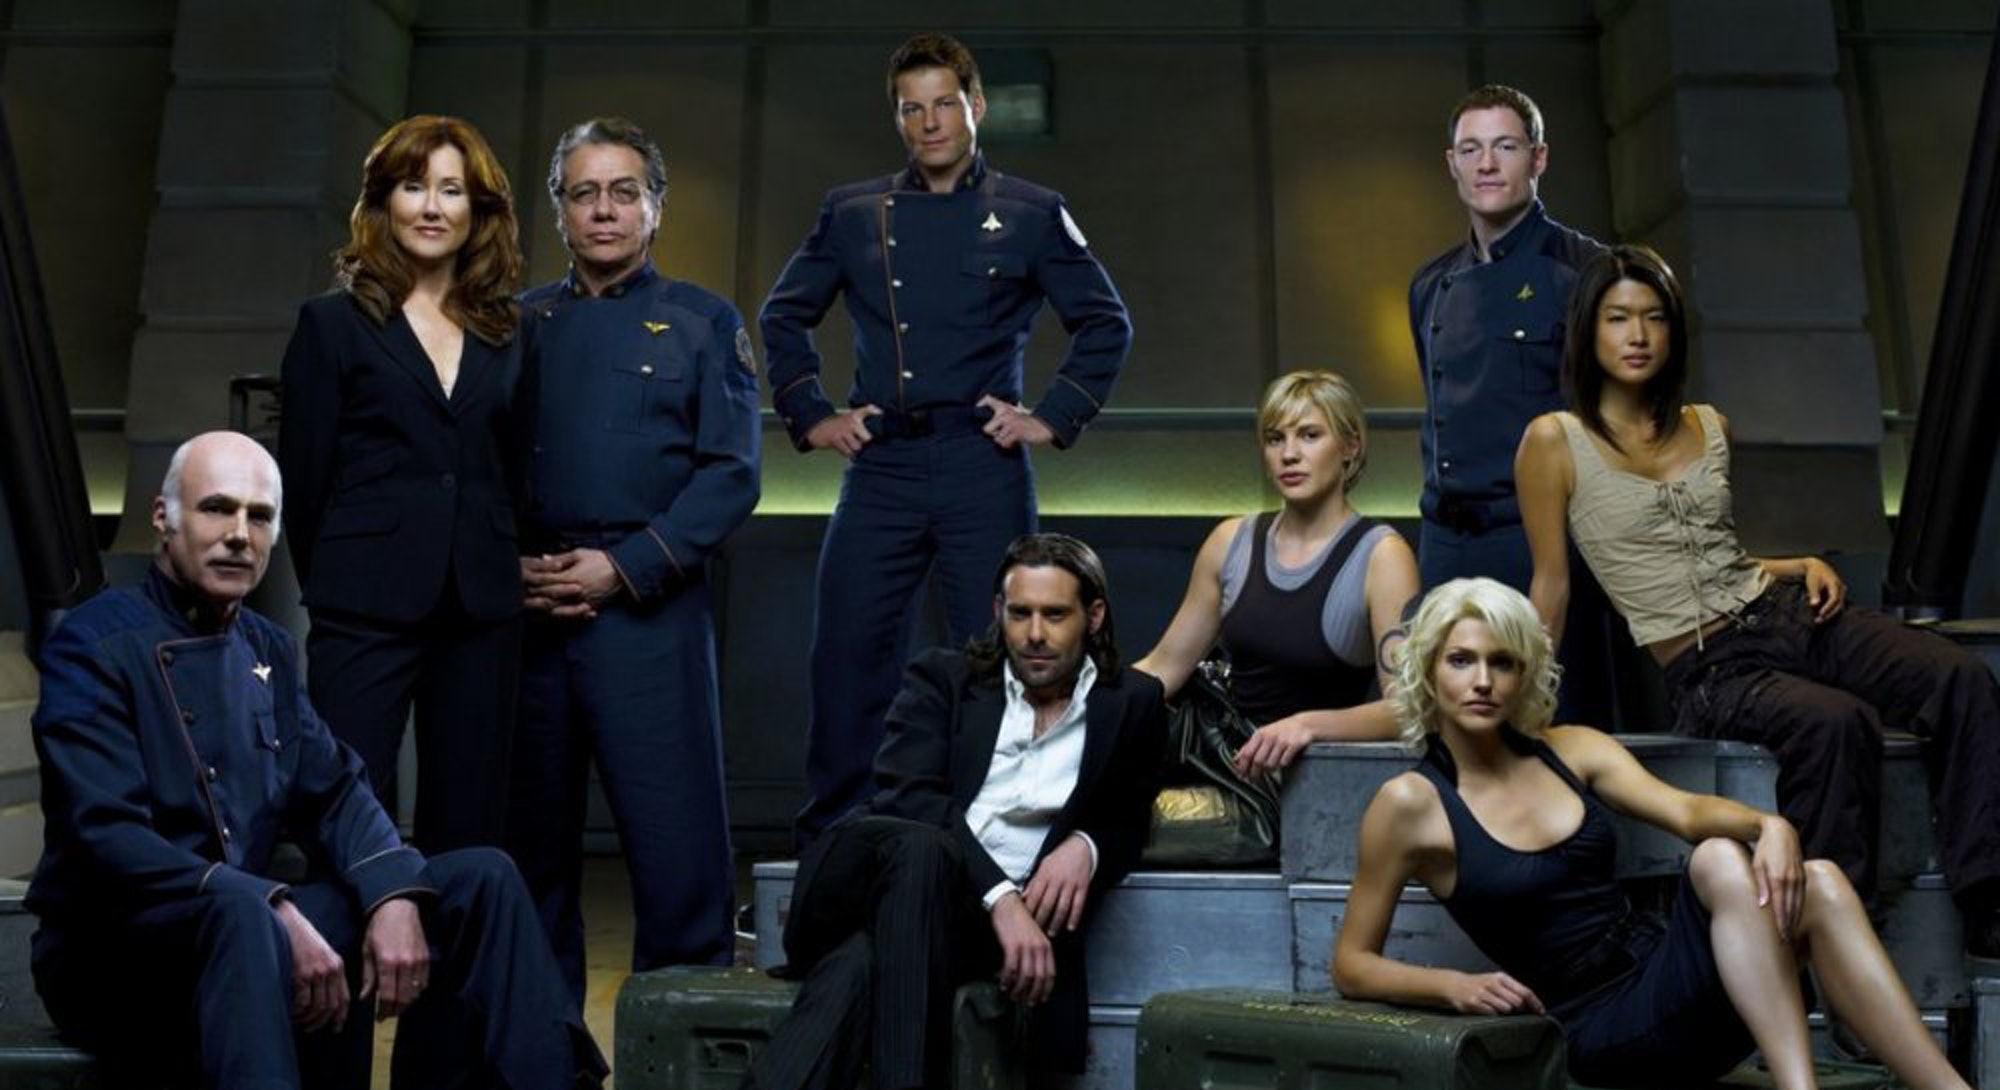 cast of characters from battlestar galactica